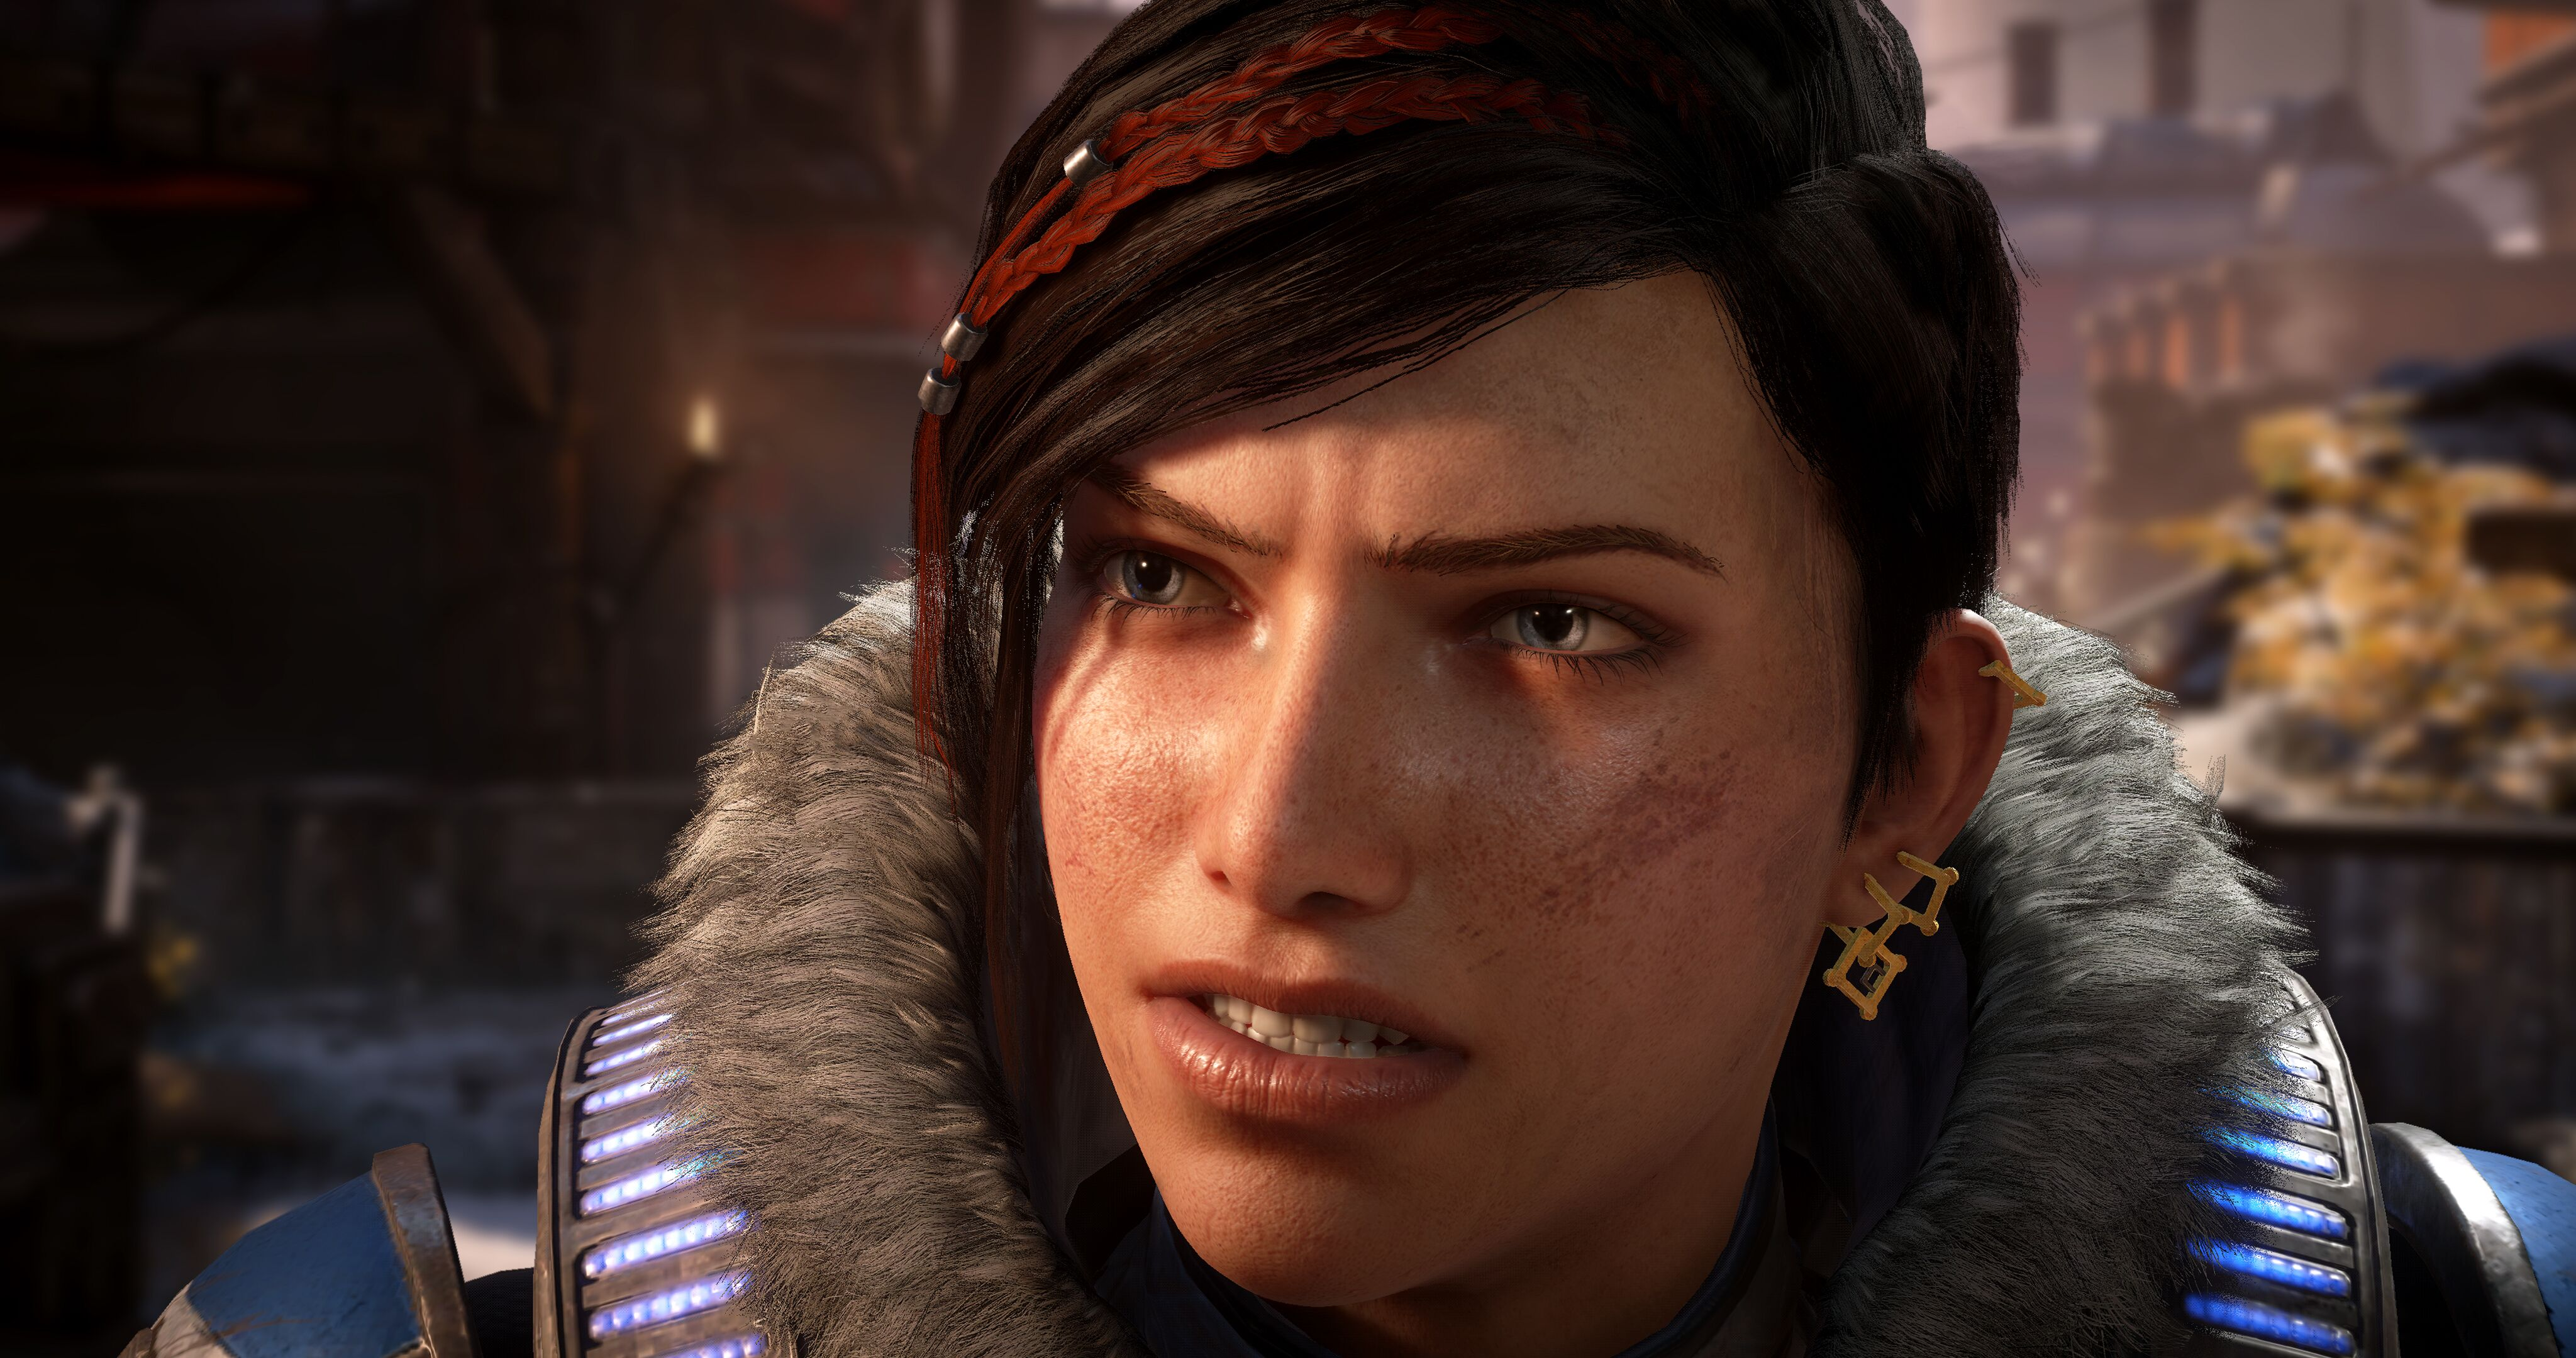 Xbox One games you should buy on Black Friday 2019